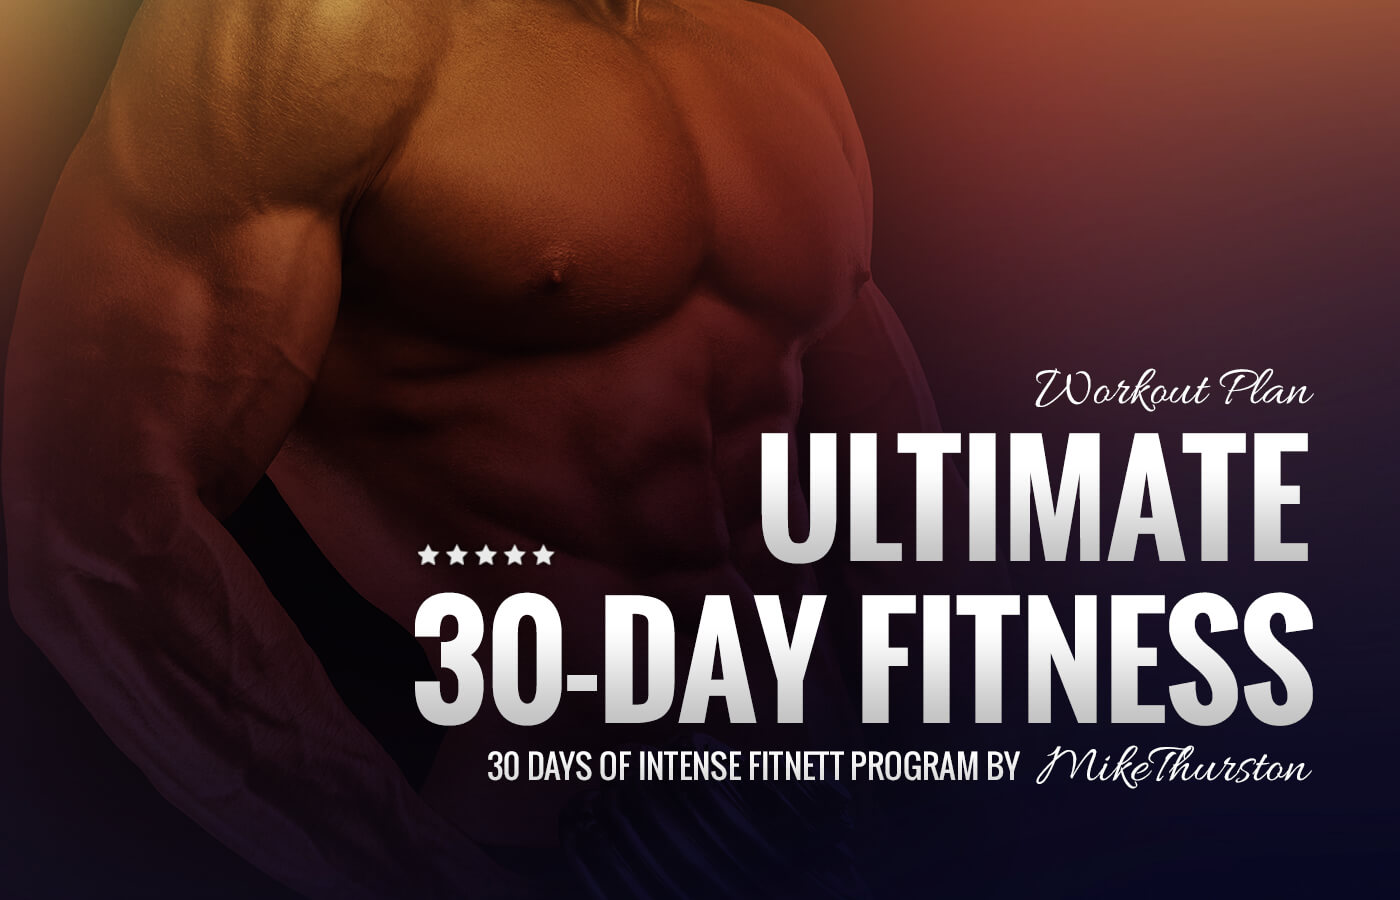 Ultimate 30-Day Fitness